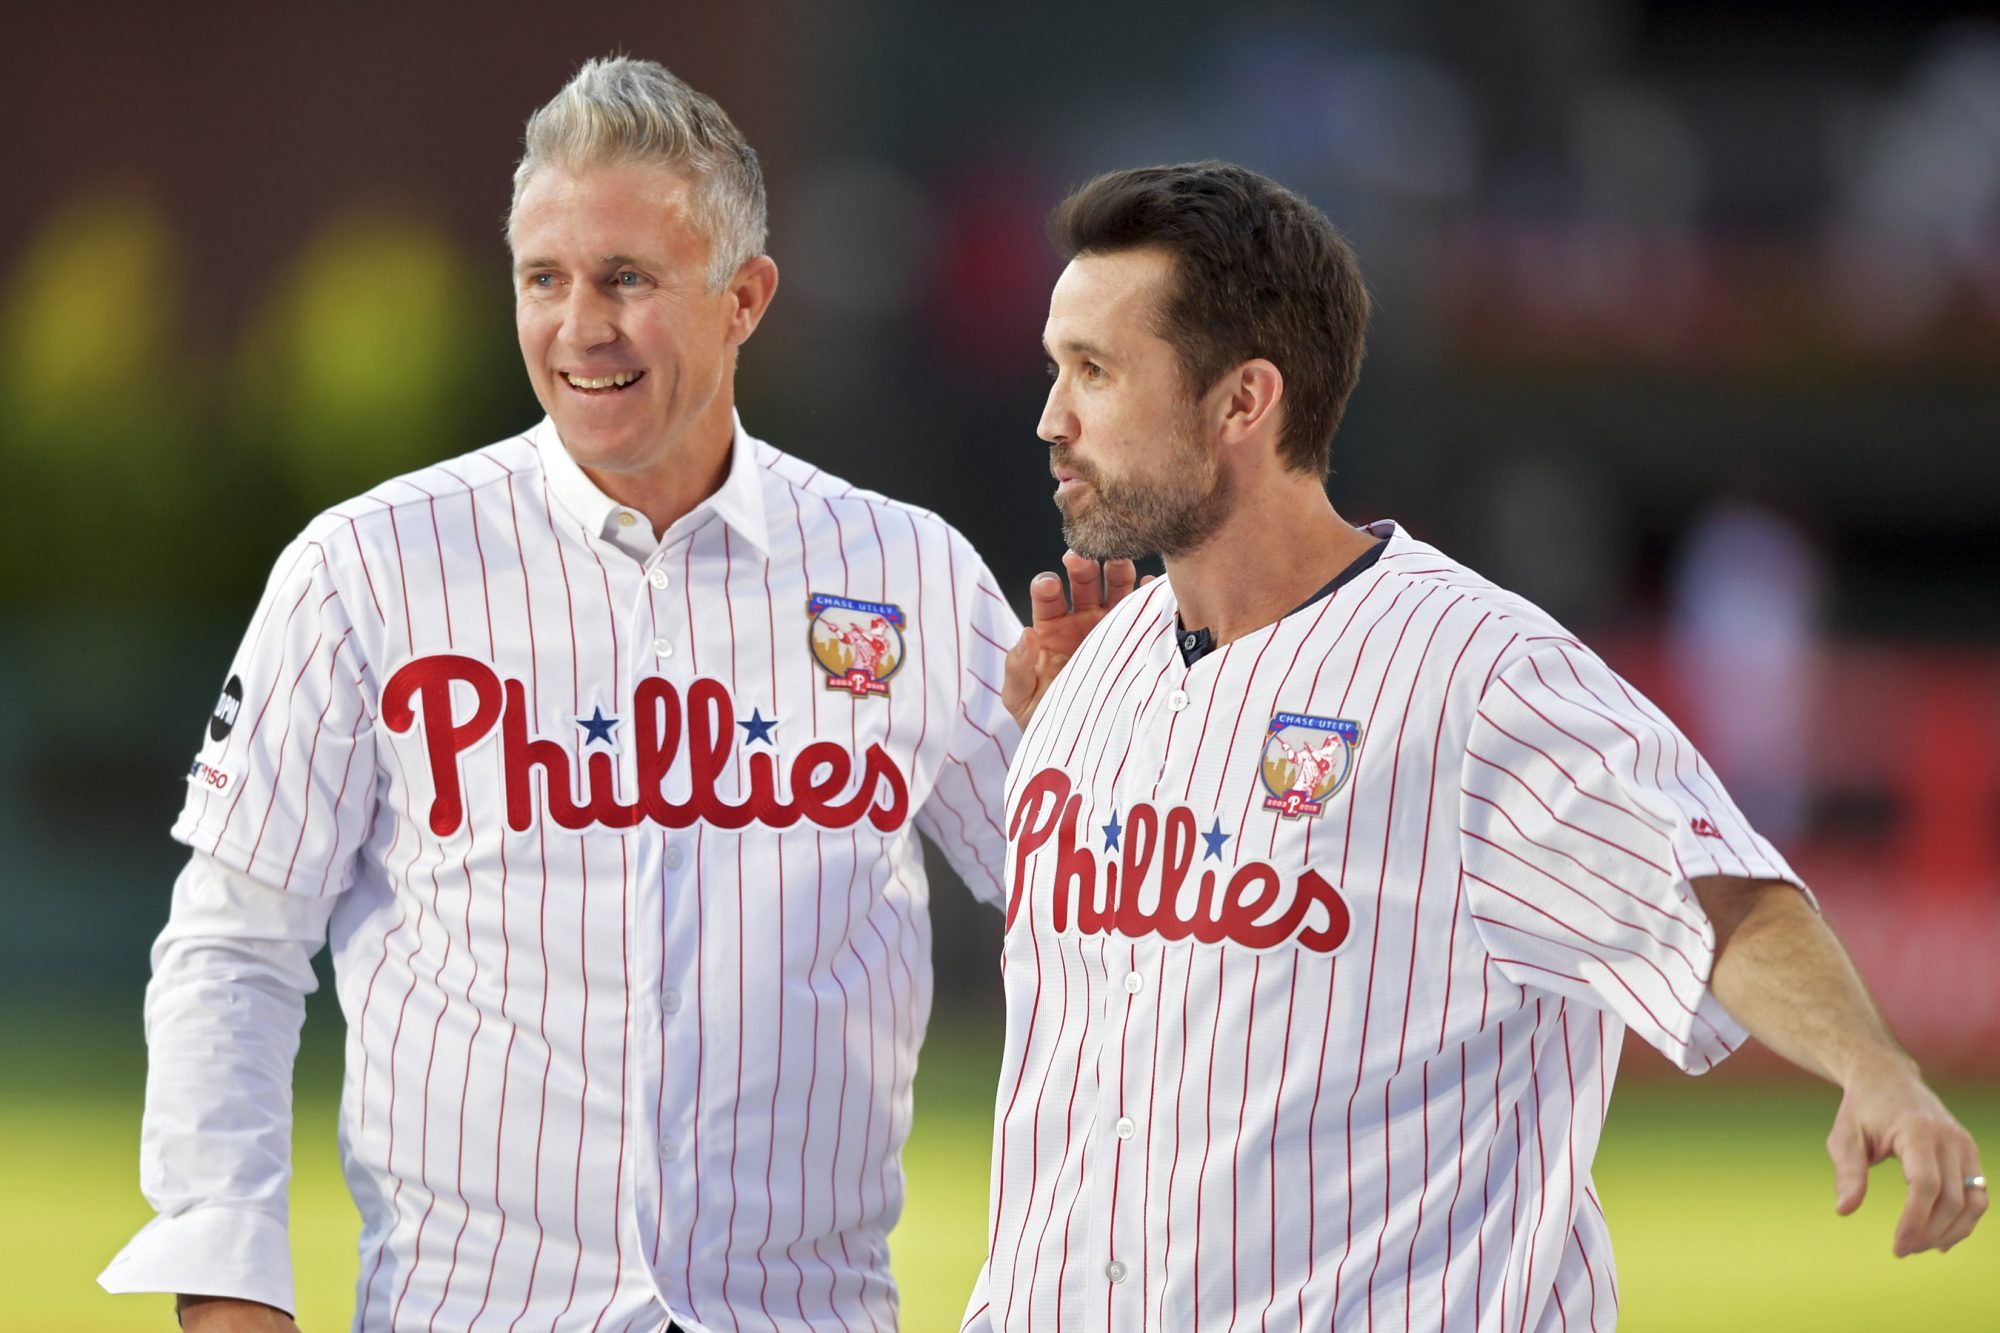 Chase Utley and Rob McElhenney